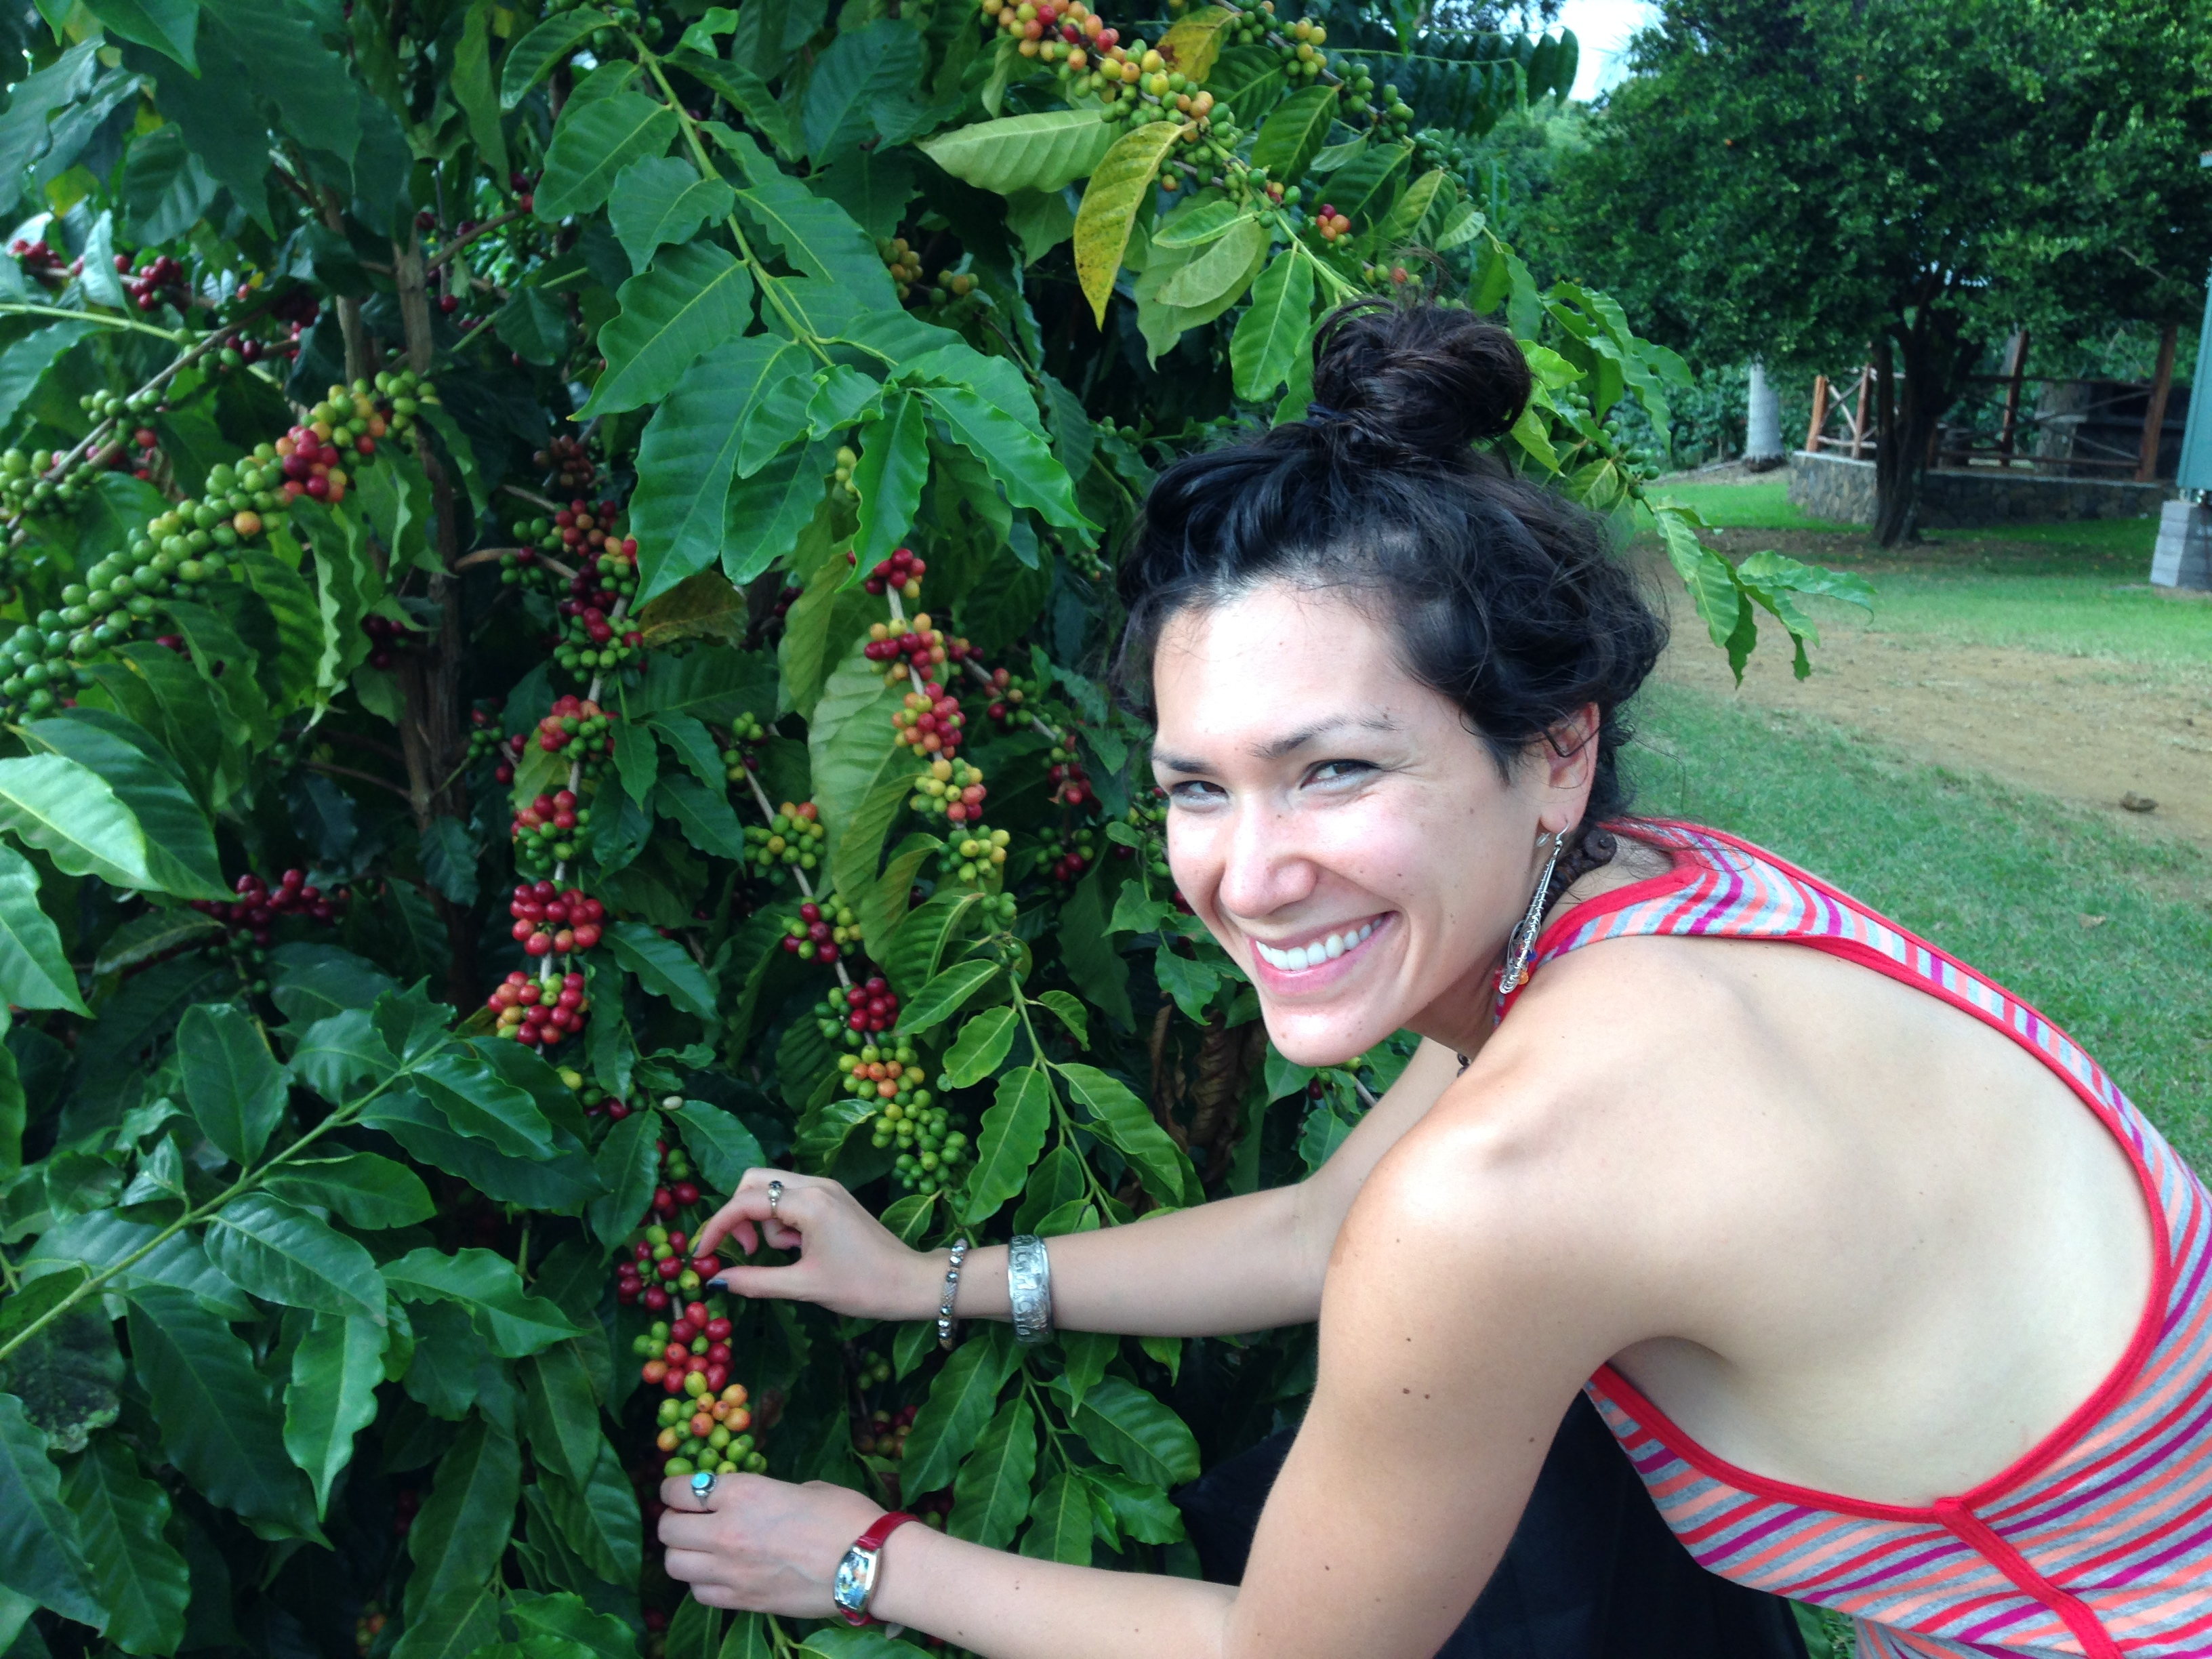 We attempted to make a few $$$ by picking some Kona coffee cherries during the trip.